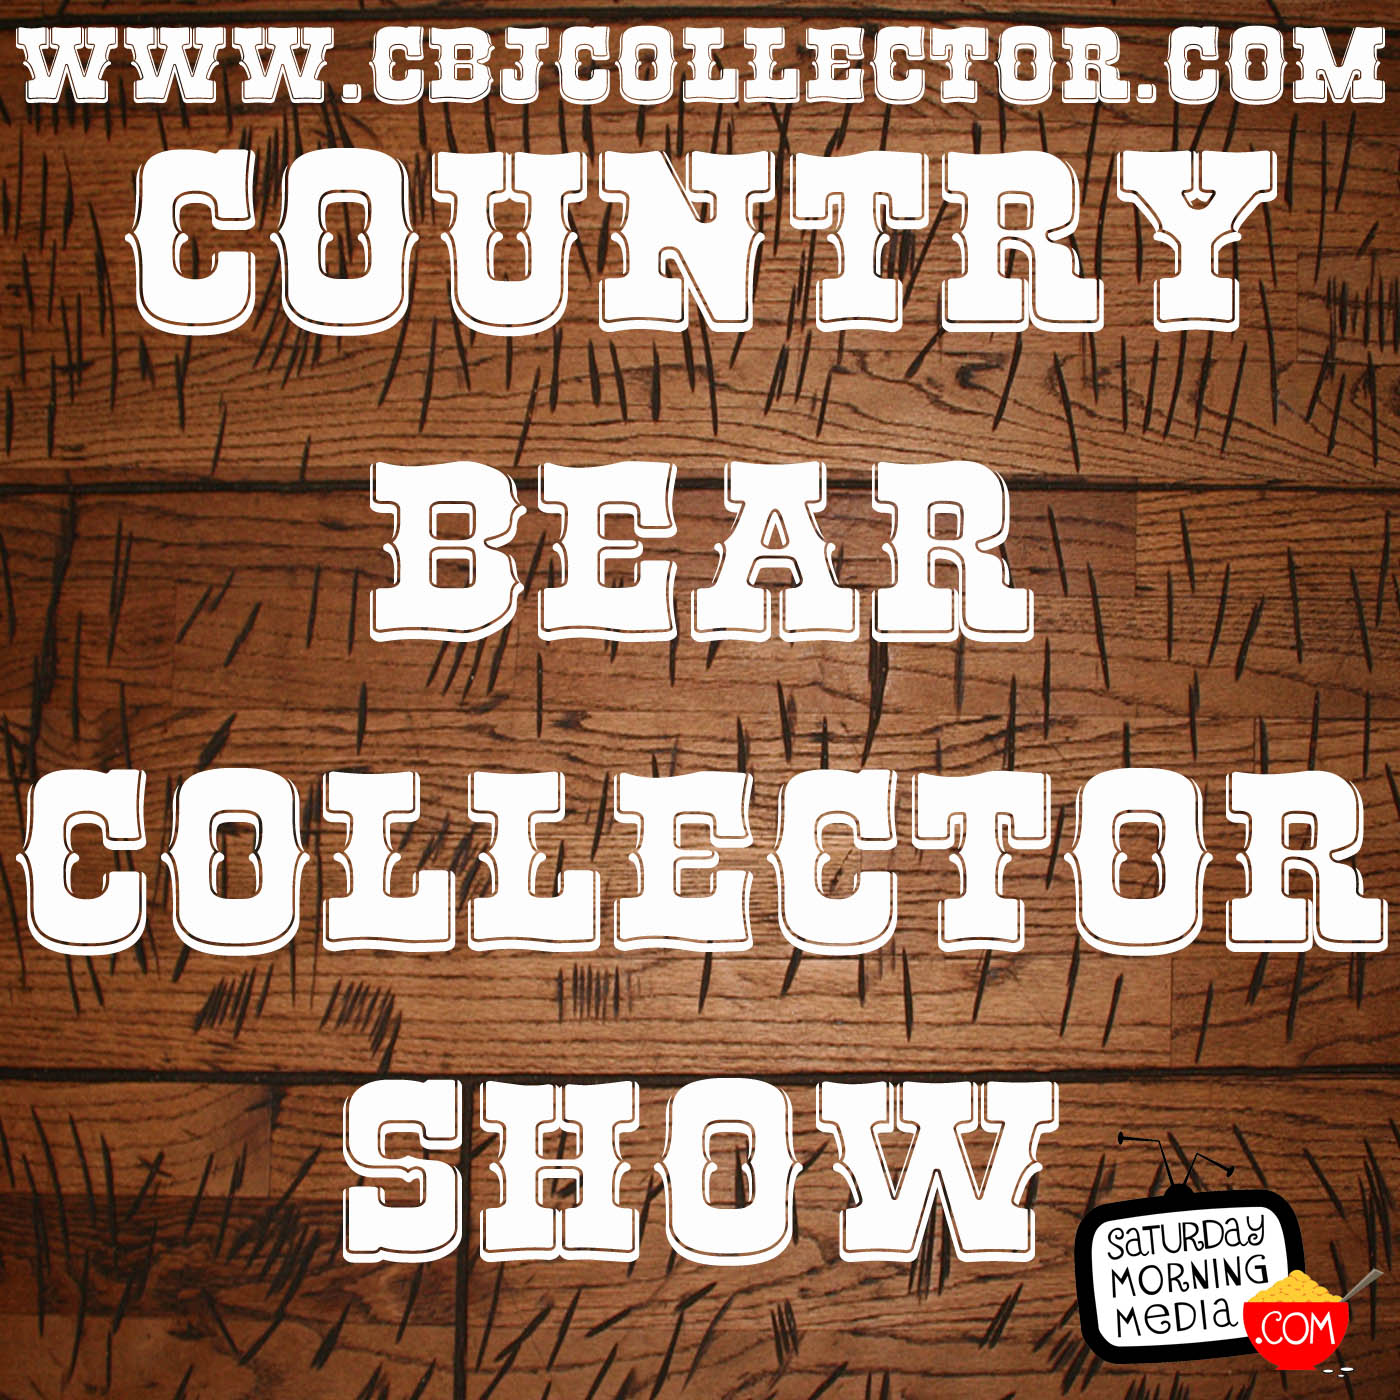 Artwork for Walt Disney Archives Holiday Memories Country Bear Display - Country Bear Collector Show #SE007